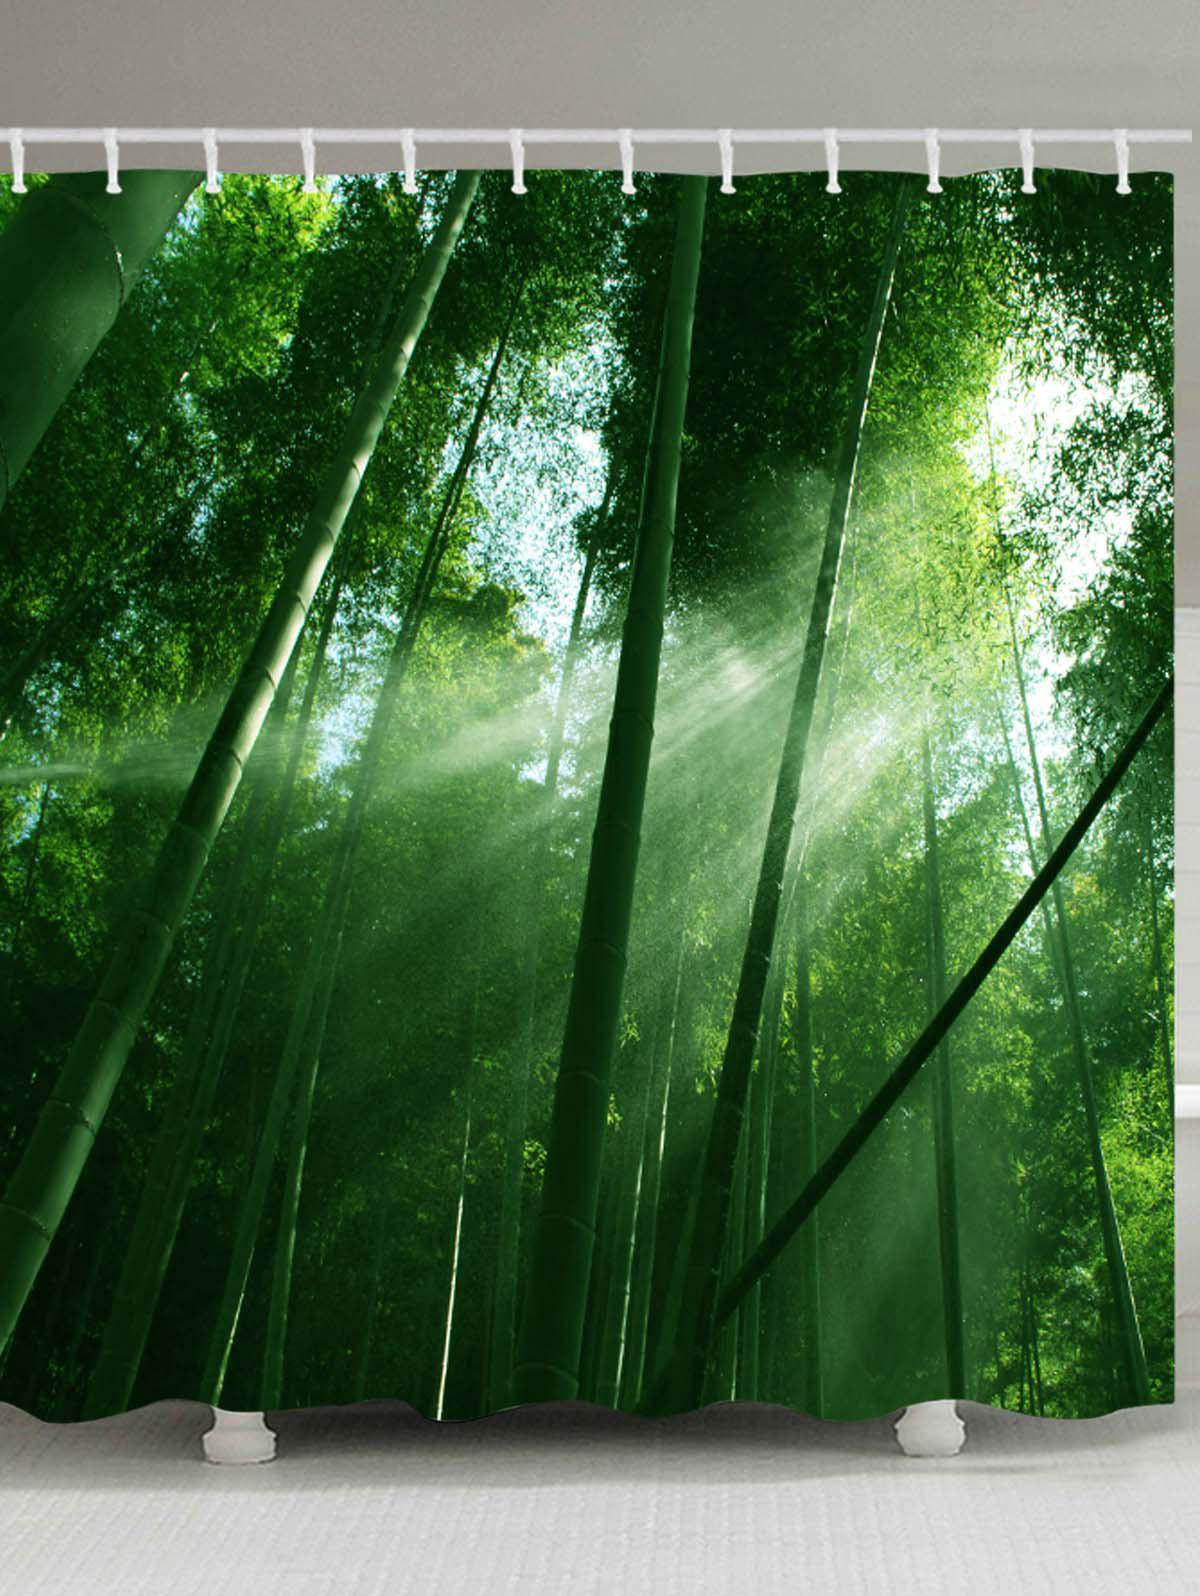 Sunlight Bamboo Forest Pattern Waterproof Shower Curtain - GREEN W71 INCH * L79 INCH